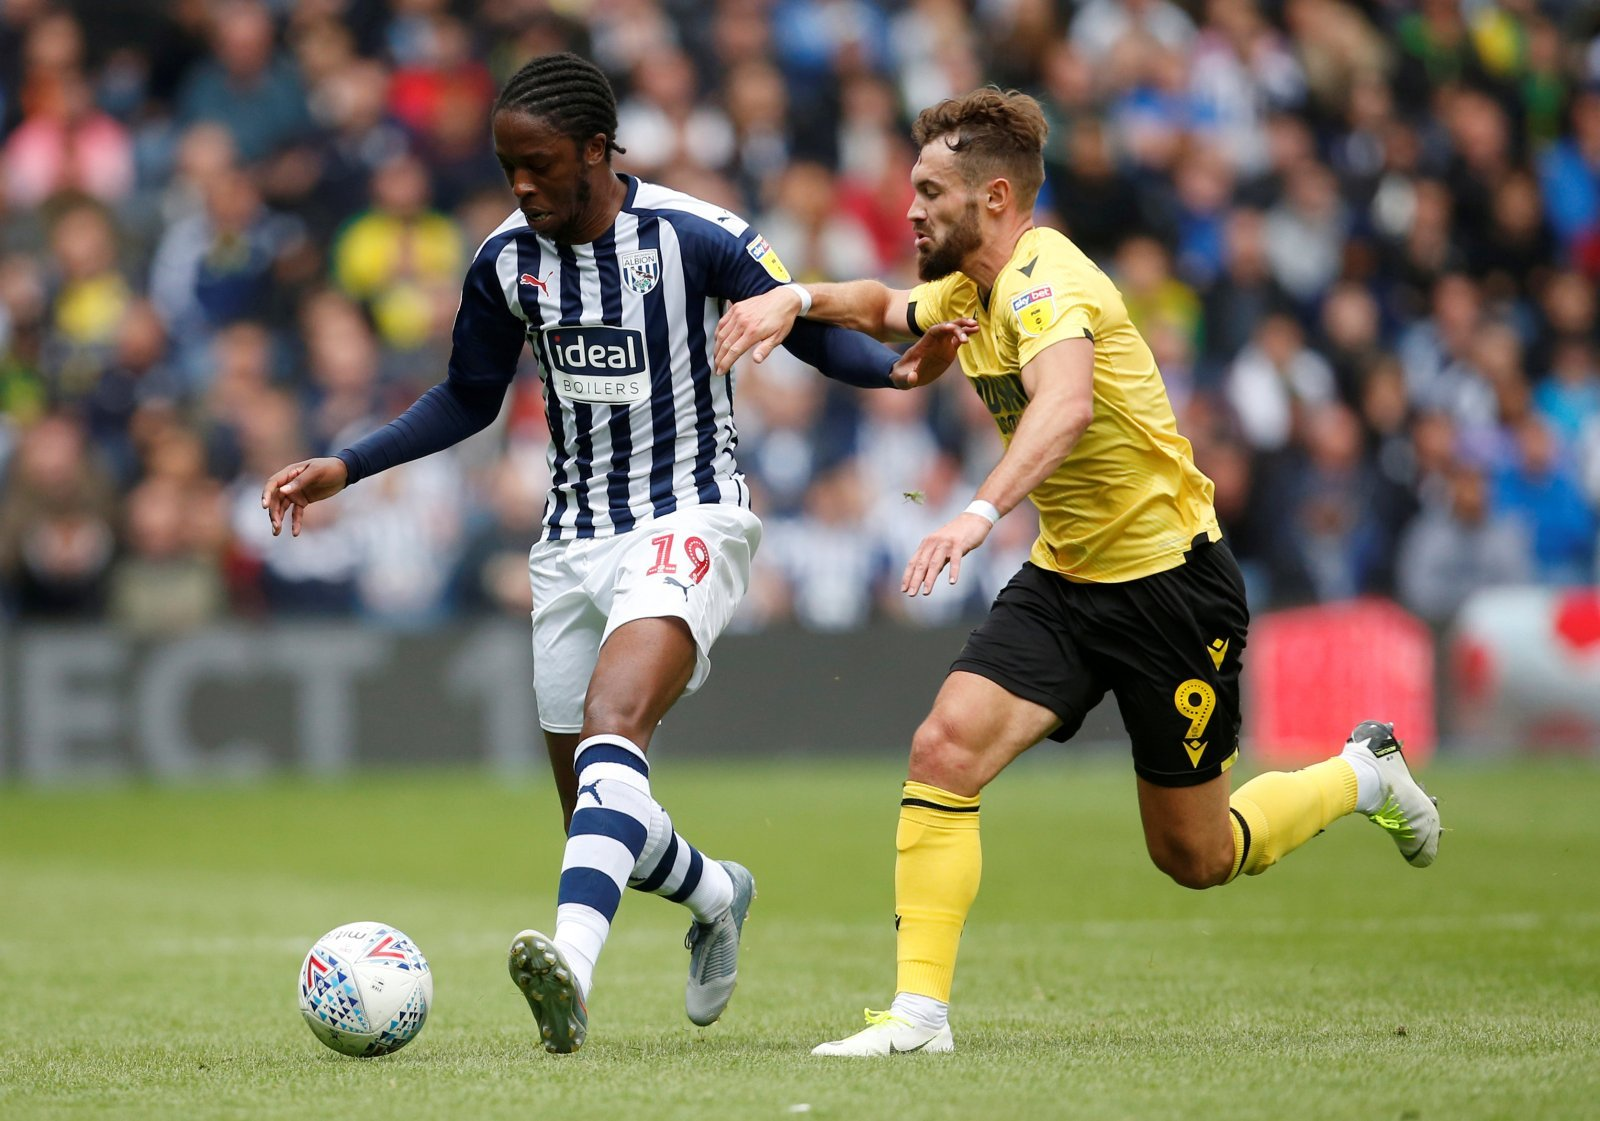 West Bromwich Albion: Fans fall in love with Romaine Sawyers following tweet